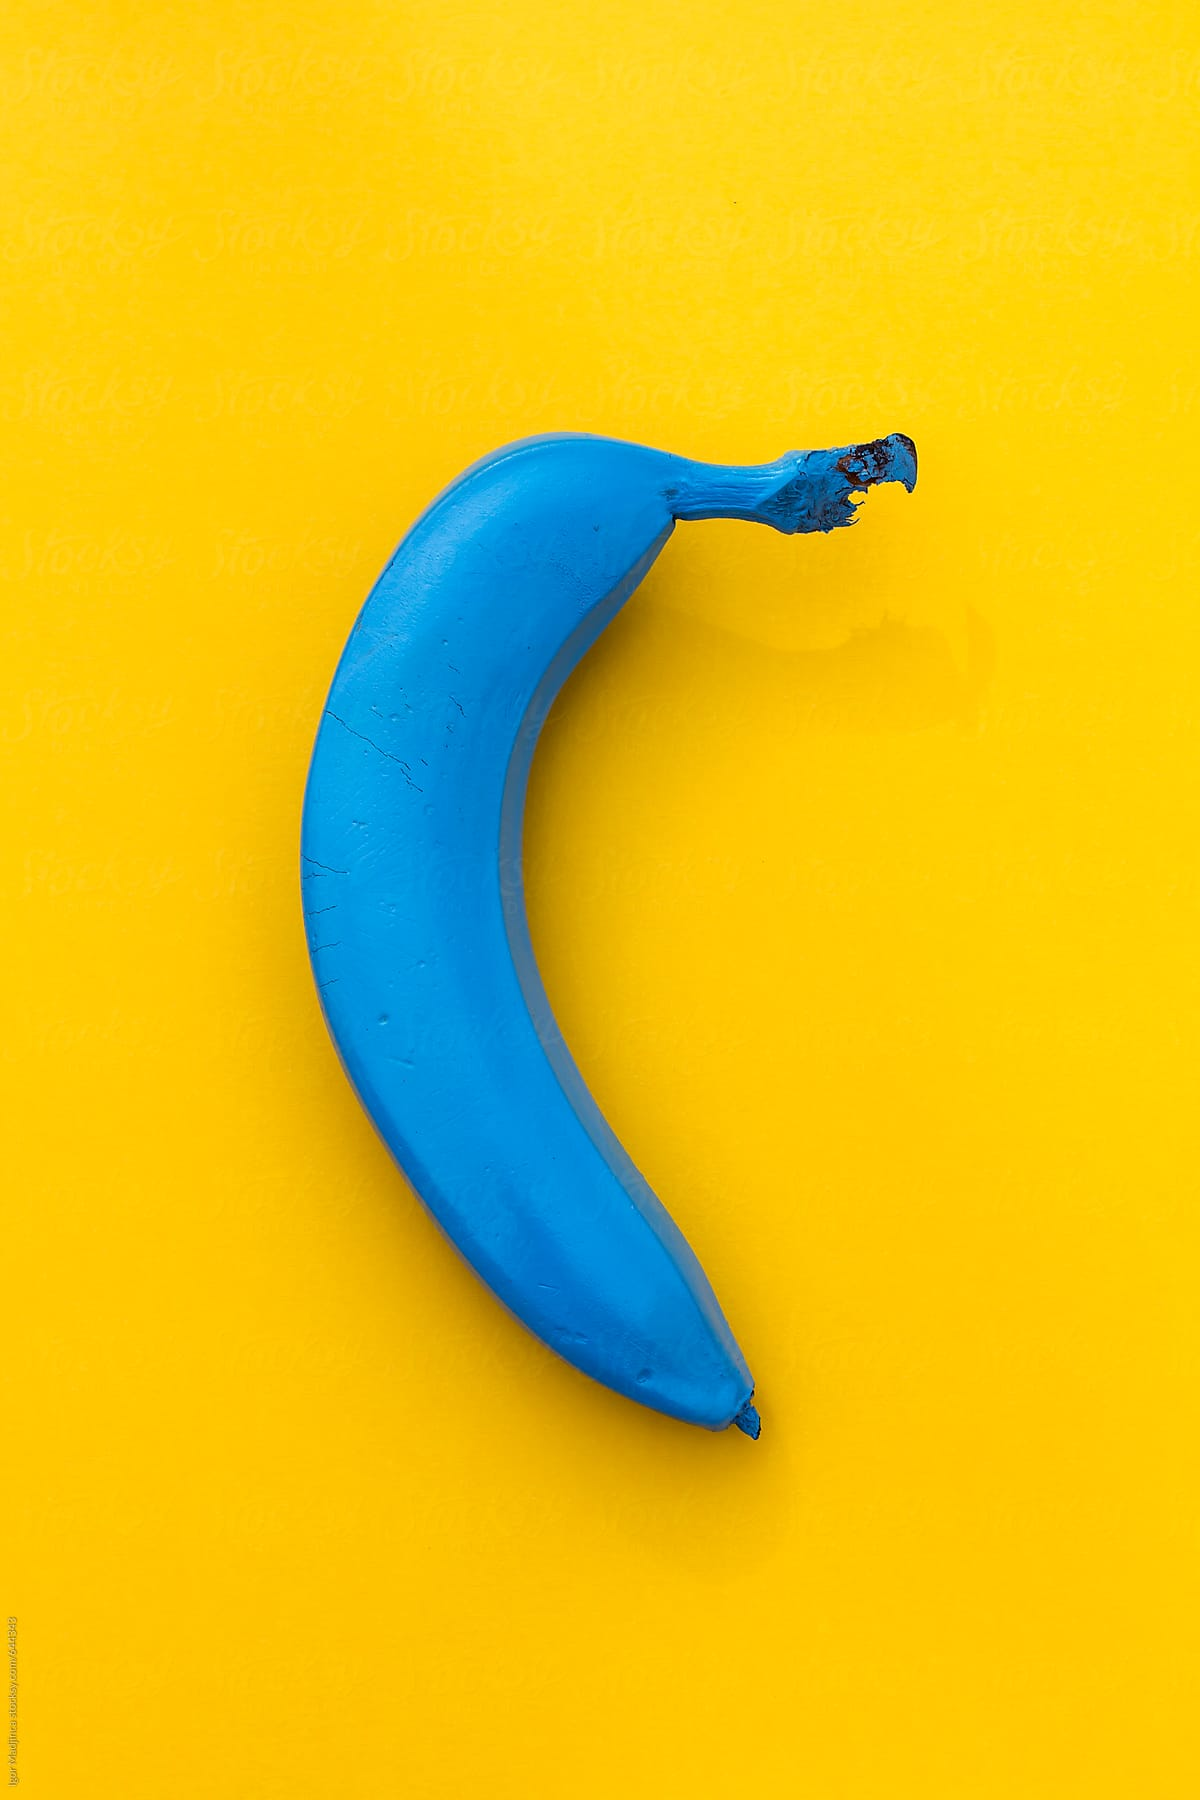 blue banana on a yellow background the contrast stocksy united. Black Bedroom Furniture Sets. Home Design Ideas